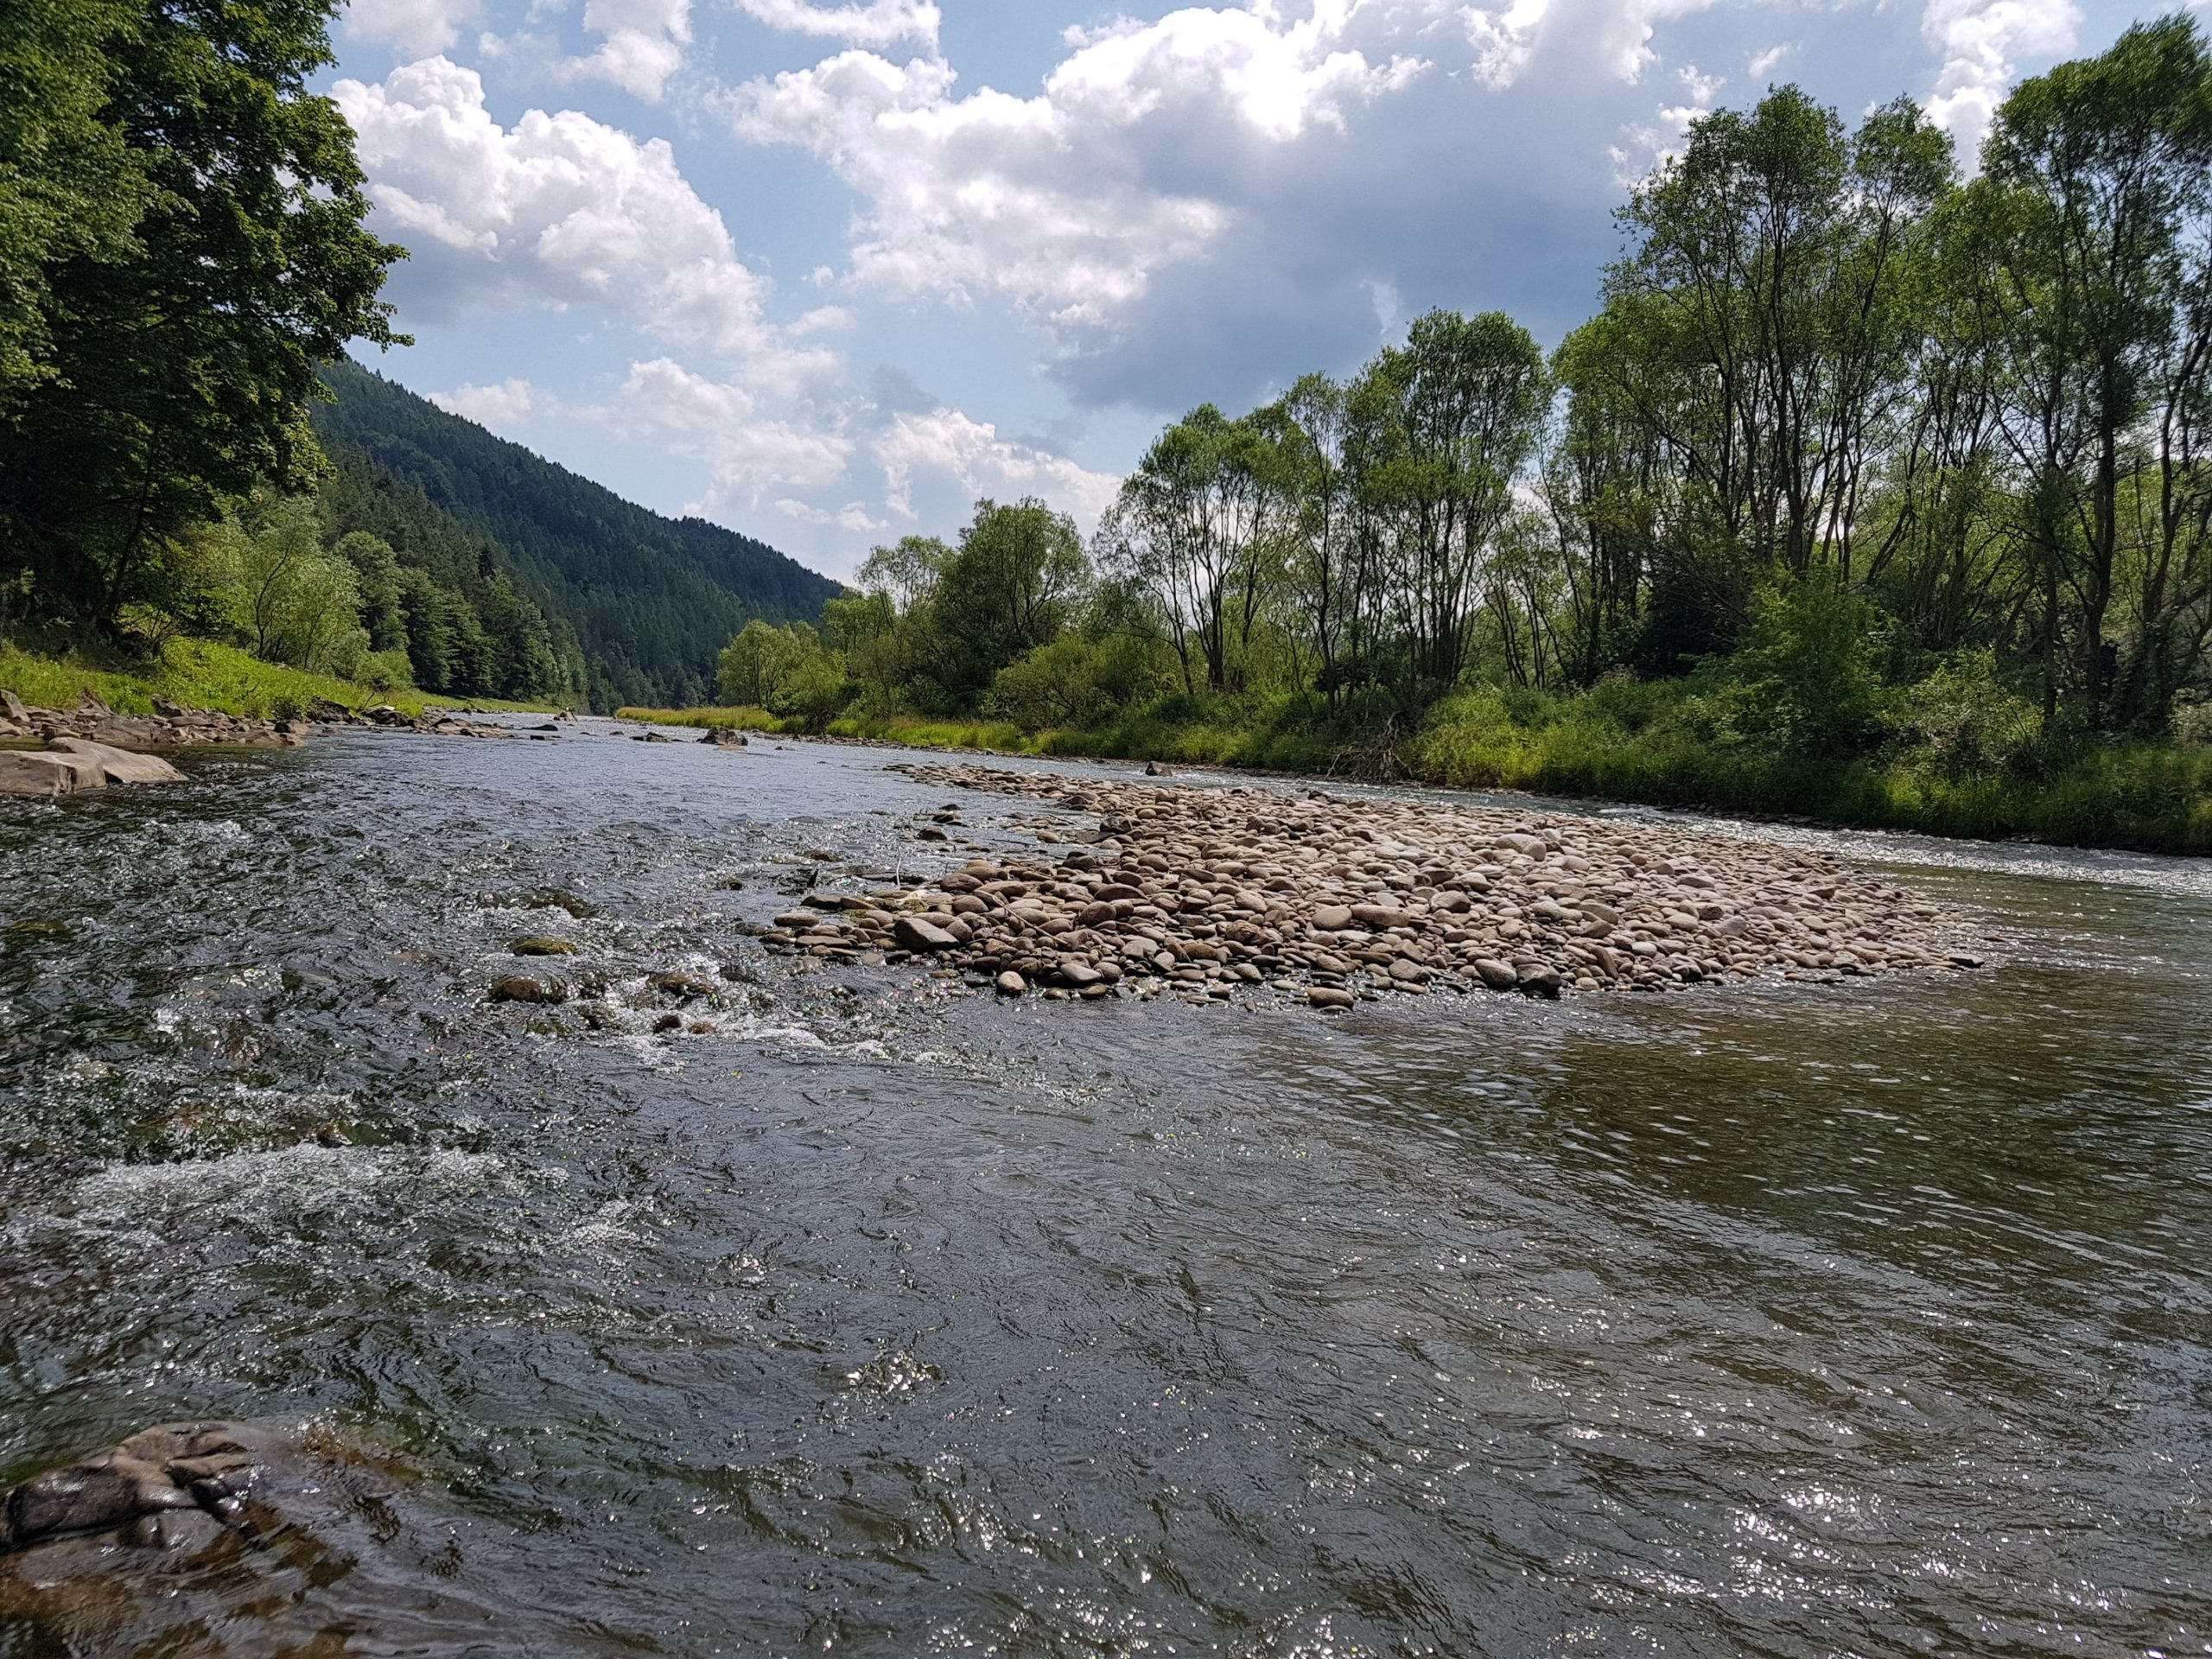 East Europe Fly Fishing Adventure - brown trout paradise